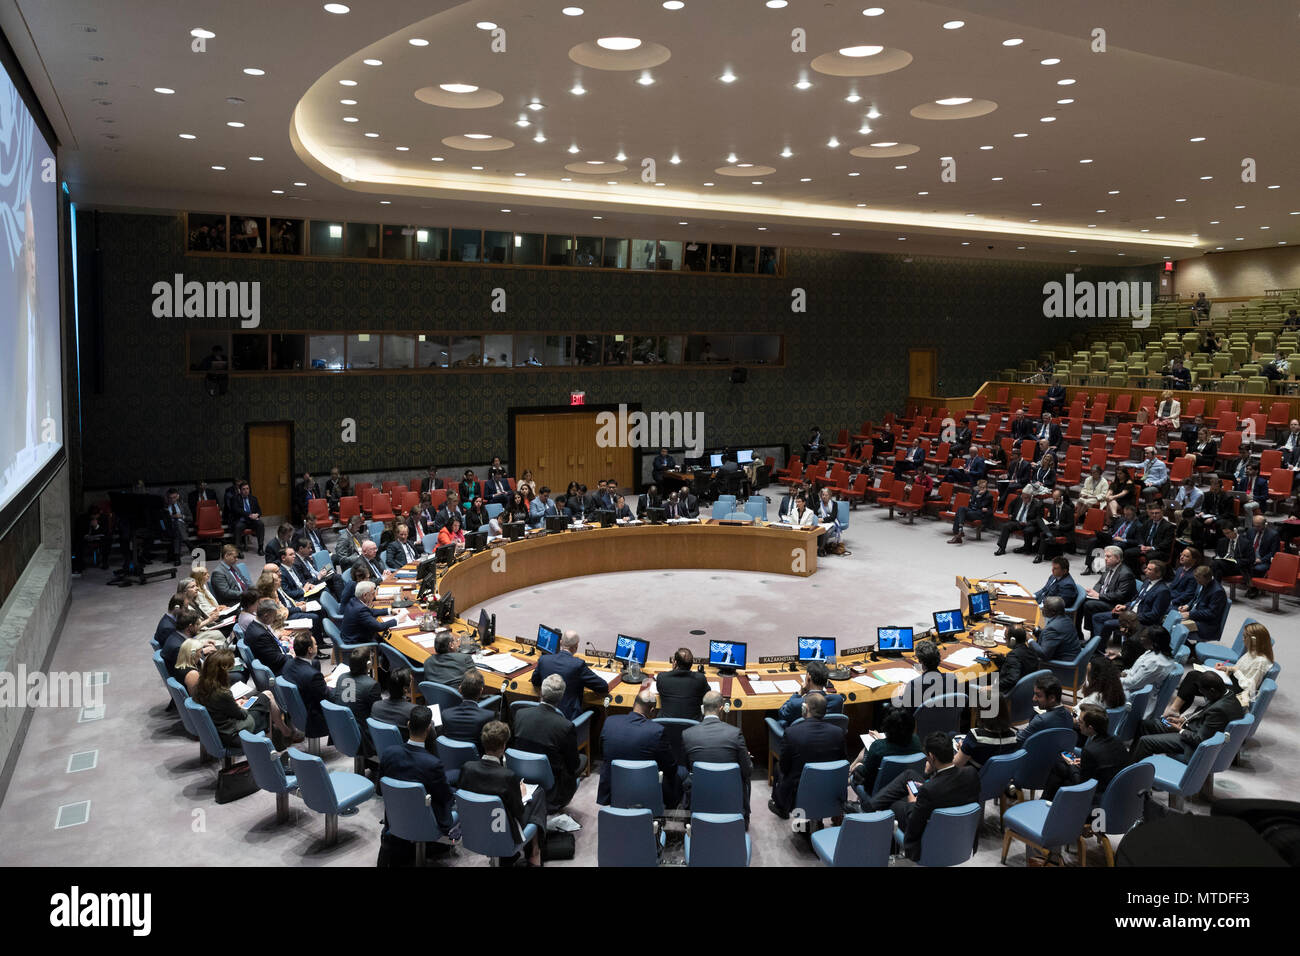 United Nations. 29th May, 2018. Photo taken on May 29, 2018 shows a general view of a Security Council meeting on Ukraine, at the United Nations headquarters in New York. UN Undersecretary-General for Political Affairs Rosemary DiCarlo on Tuesday deplored the stalemate in eastern Ukraine, reminding the world that the conflict is very much alive. Credit: Li Muzi/Xinhua/Alamy Live News - Stock Image